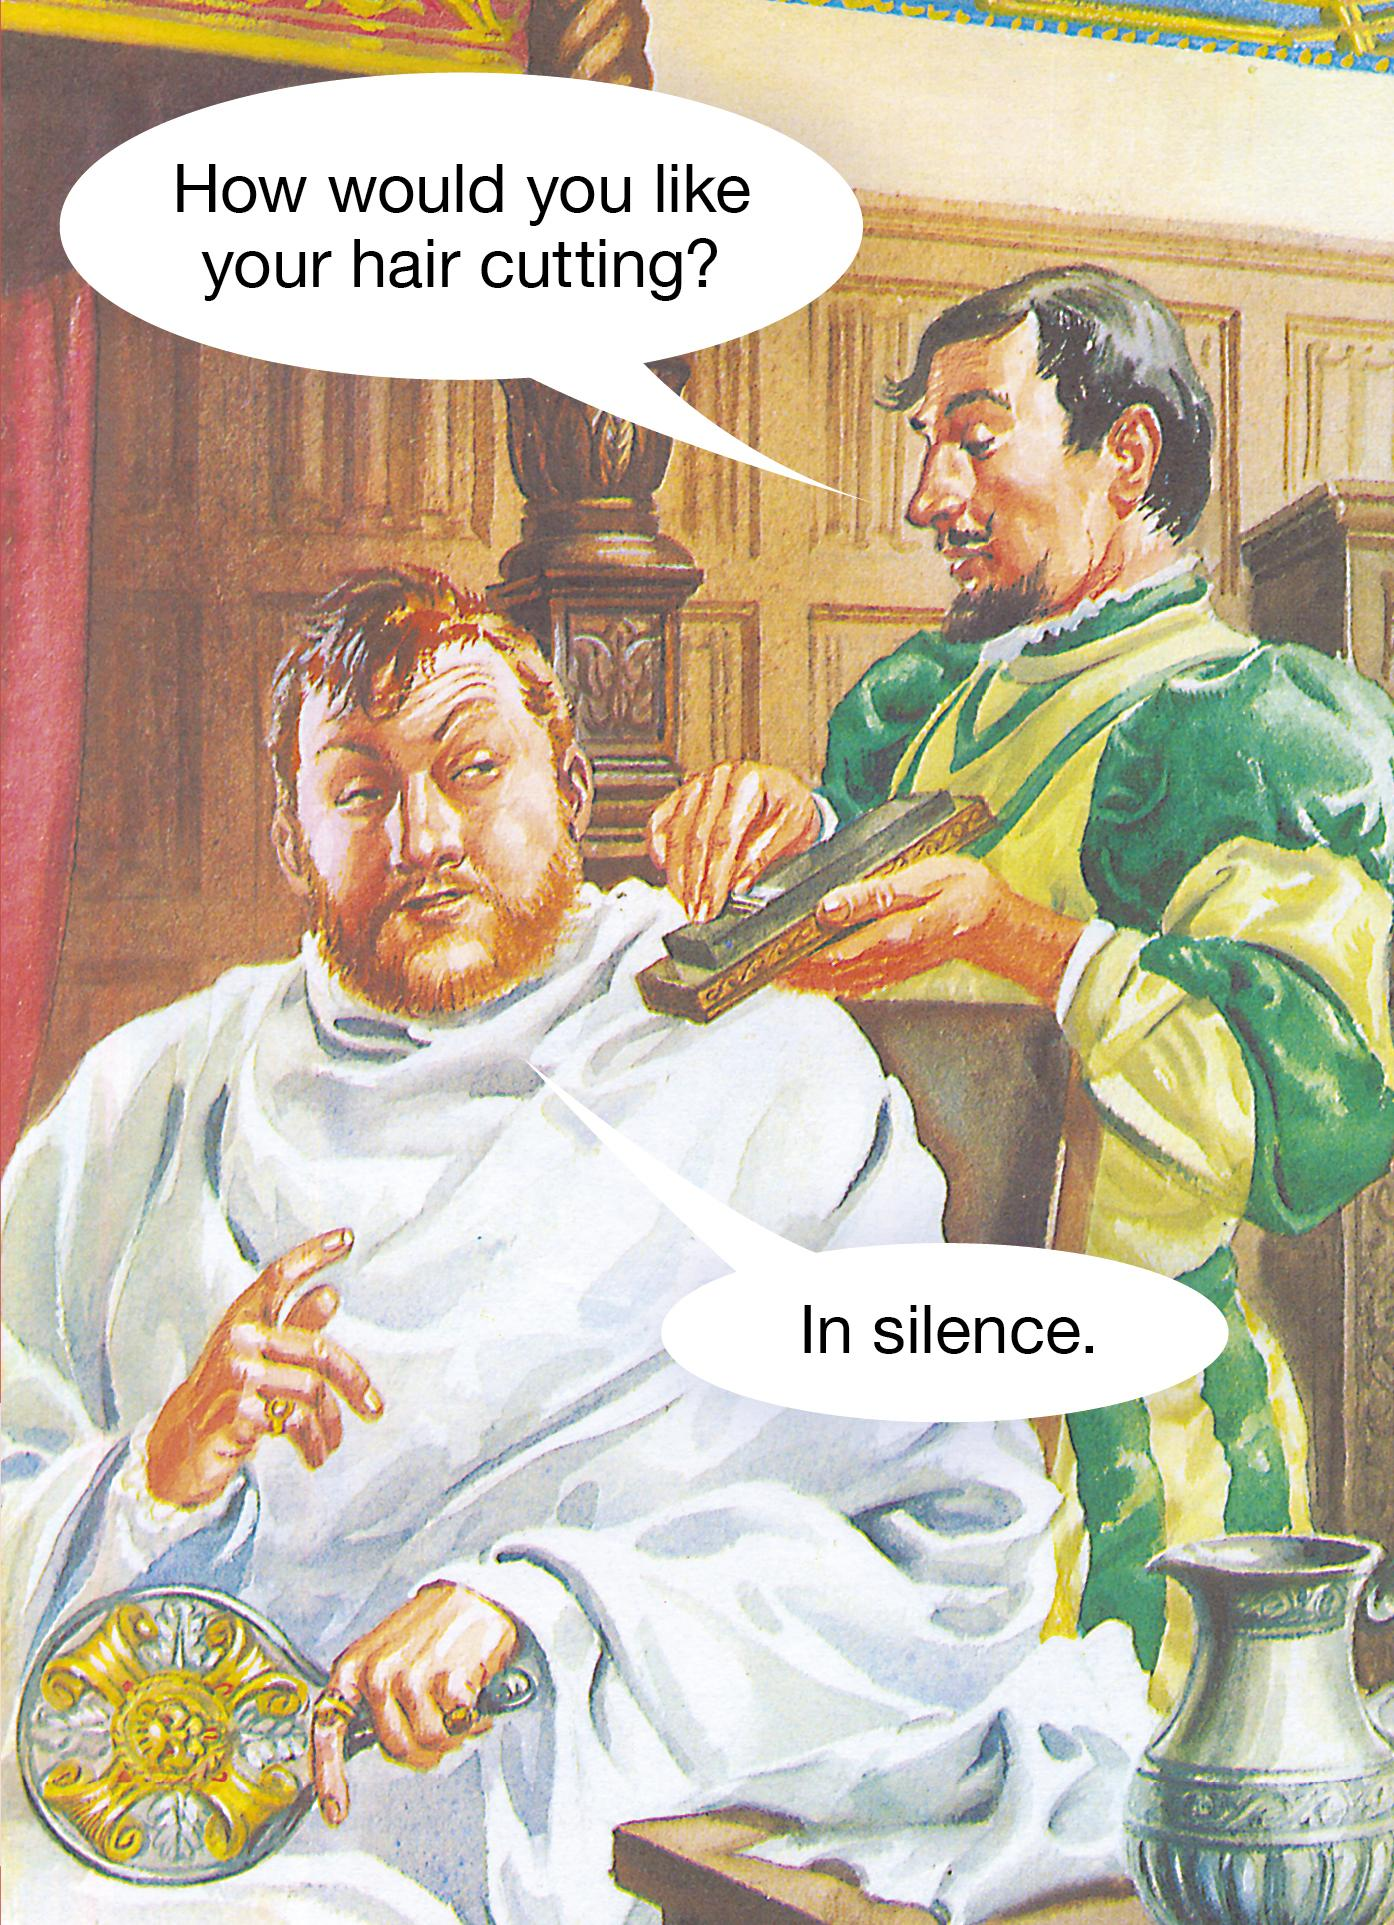 How would you like your hair cutting? In silence